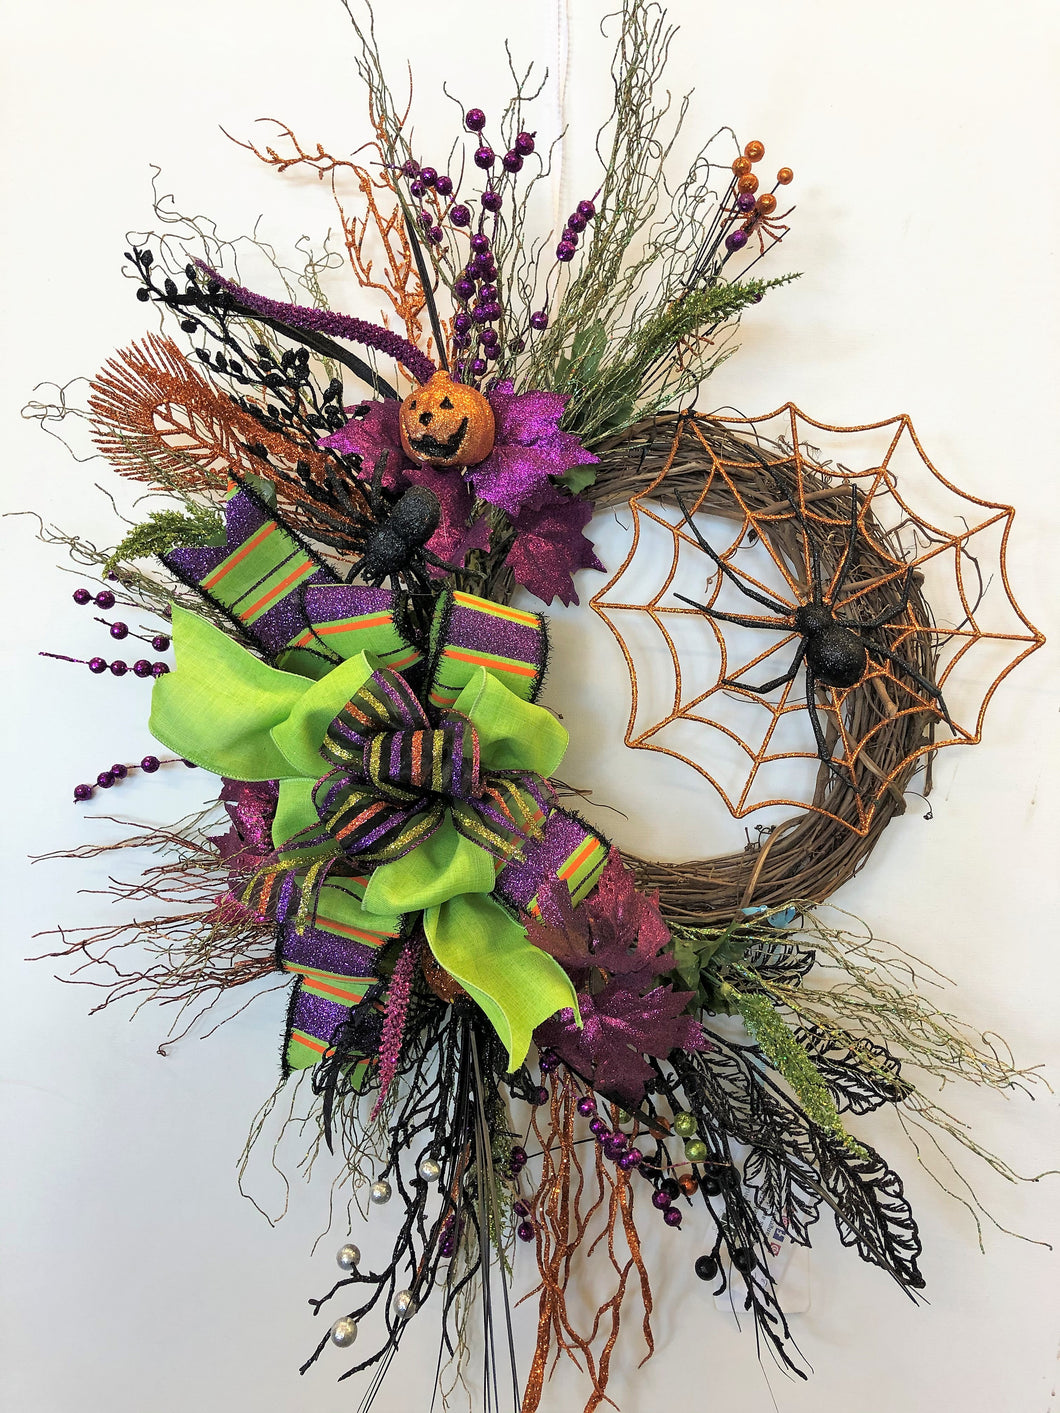 Glittery Purple, Orange and Black Halloween Cresent Wreath with Spider Web/Hal33